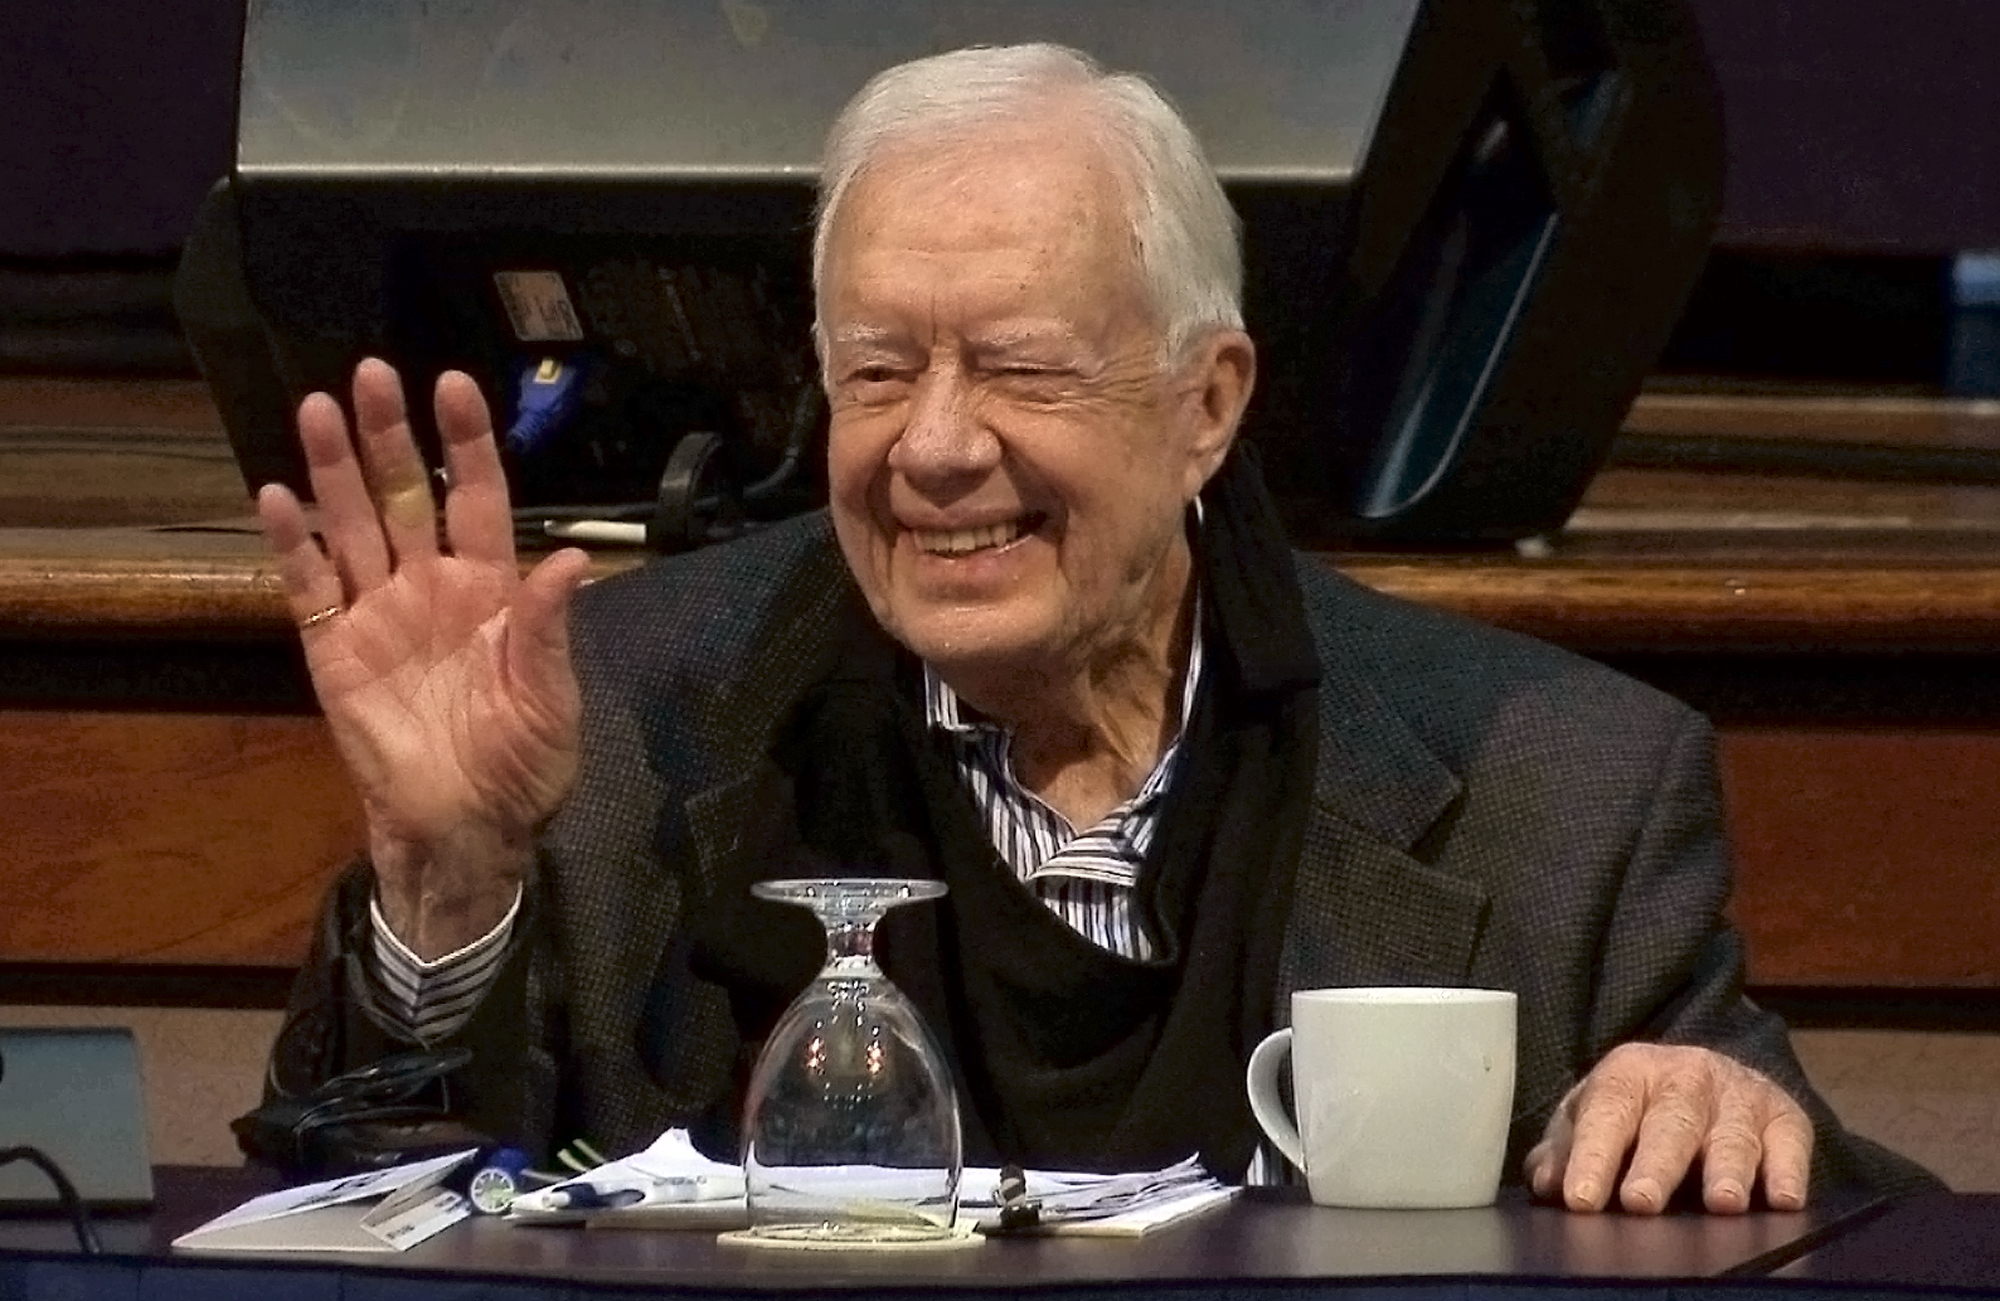 In this image taken from video, former President Jimmy Carter at the Carter Center in Atlanta, GA, on May 9, 2017.